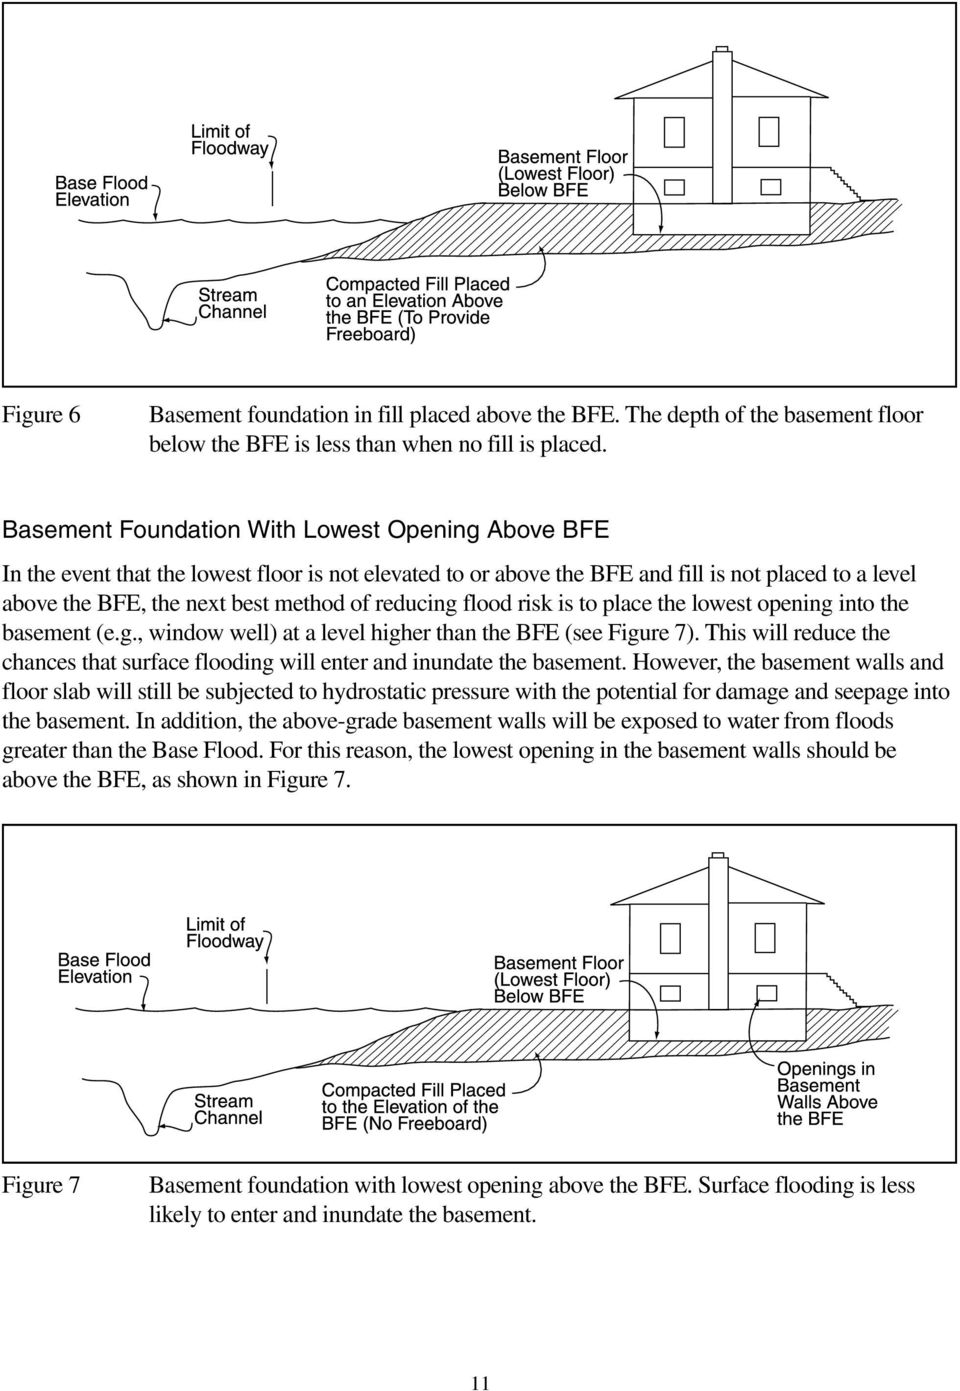 reducing flood risk is to place the lowest opening into the basement (e.g., window well) at a level higher than the BFE (see Figure 7).